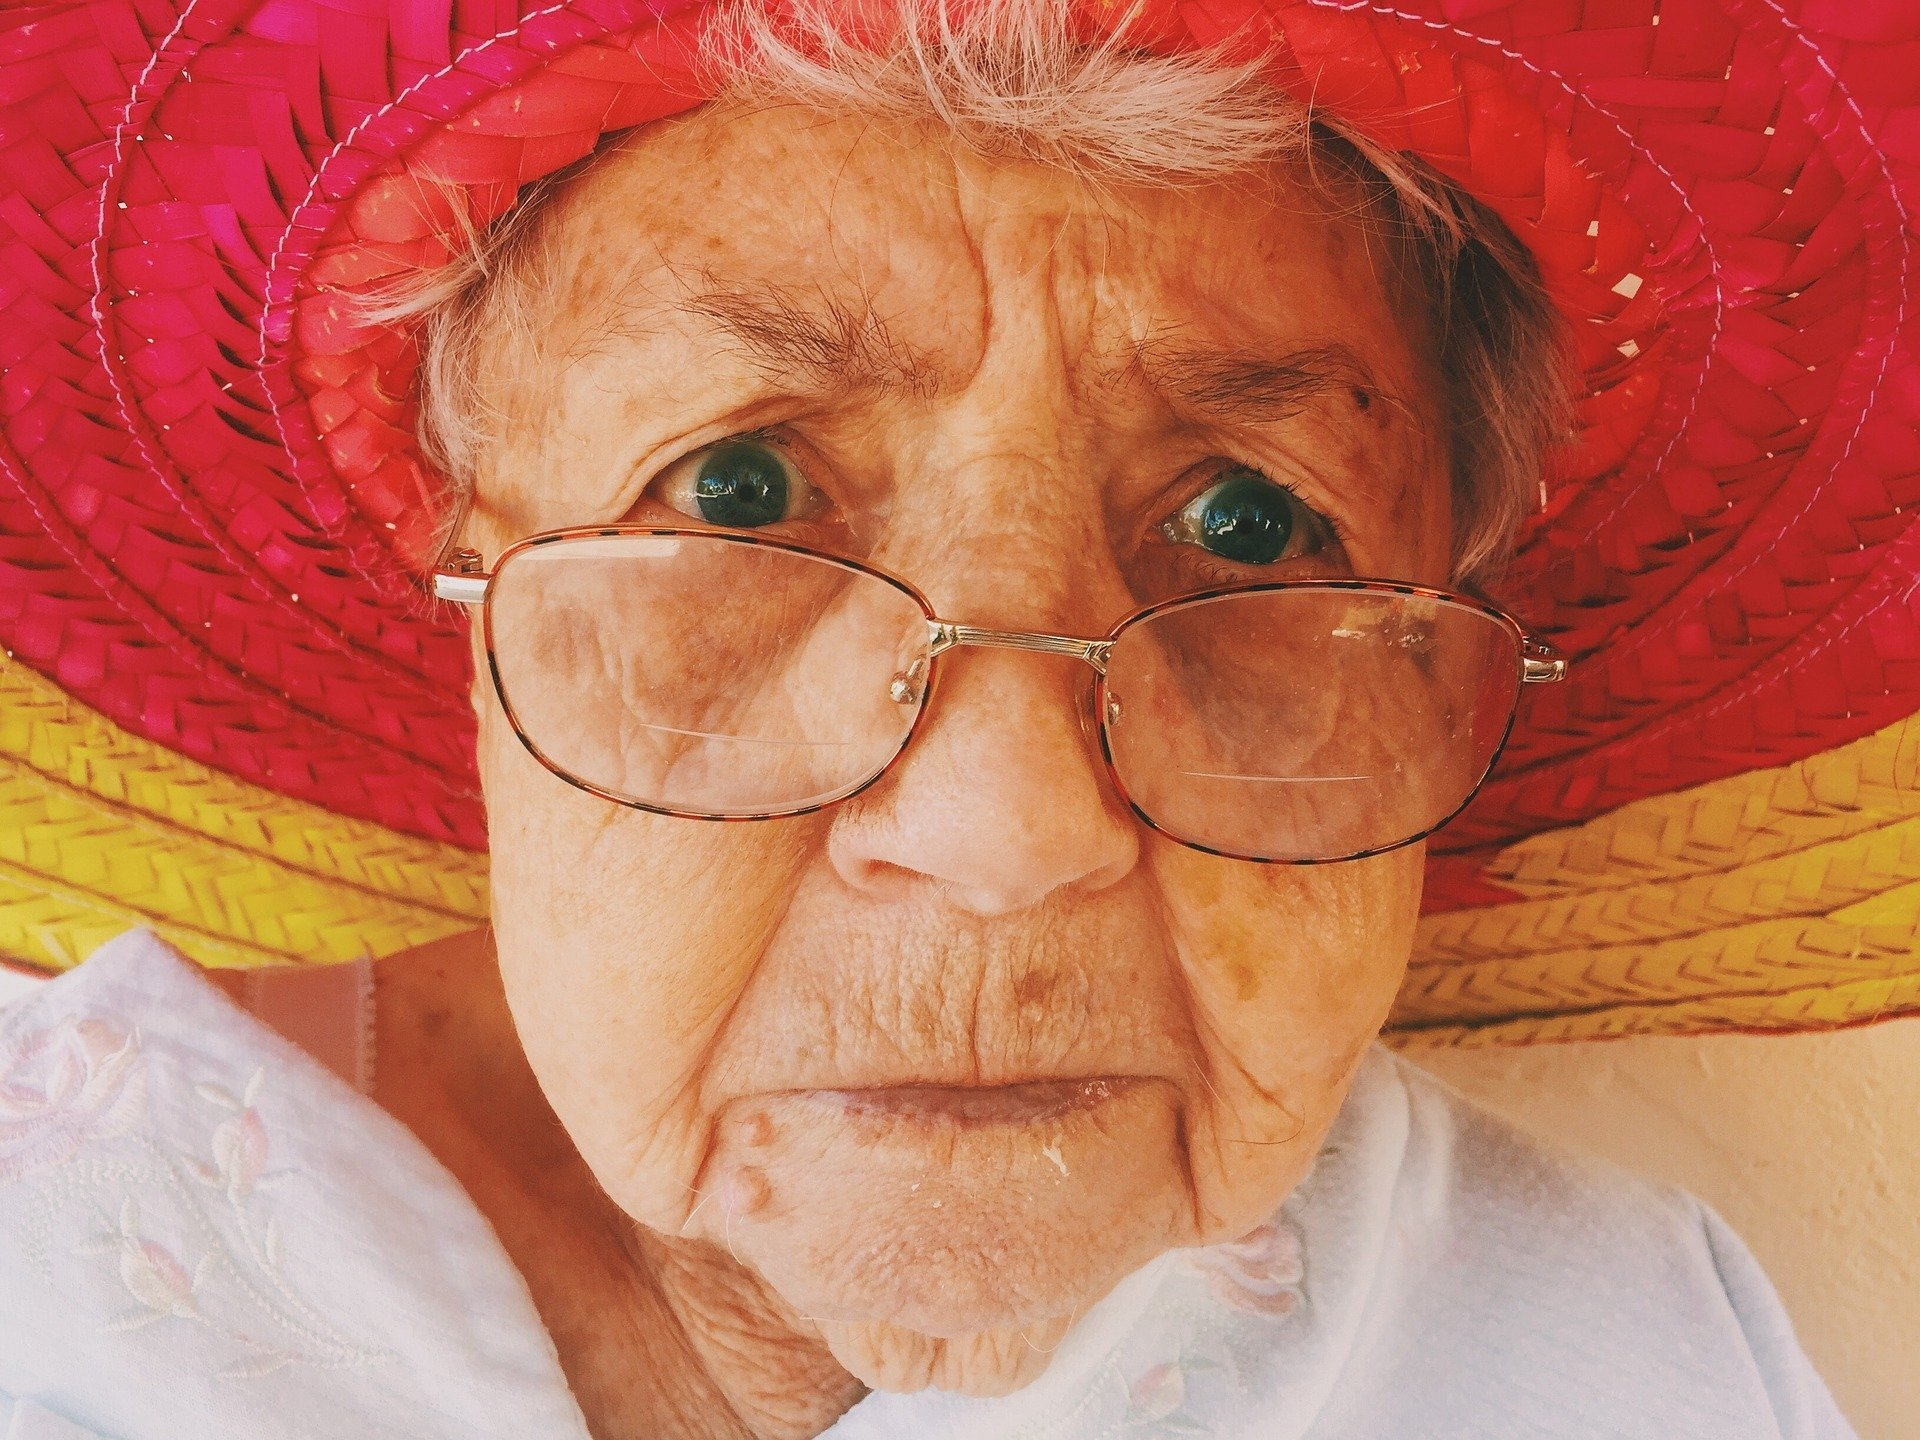 An old woman looking shocked while wearing a colorful hat and glasses. | Photo: Pixabay